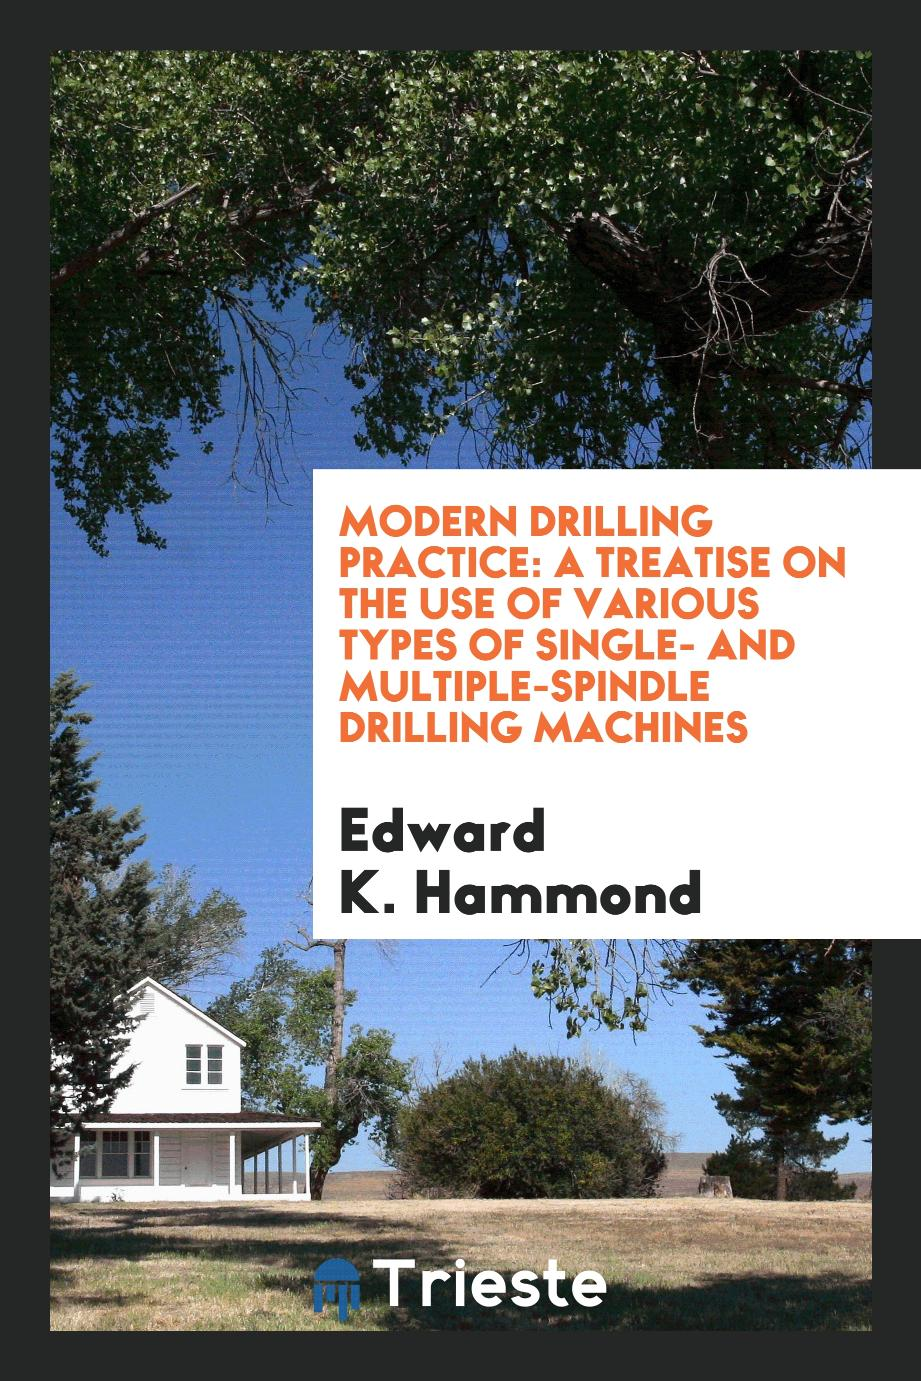 Modern Drilling Practice: A Treatise on the Use of Various Types of Single- and Multiple-Spindle Drilling Machines